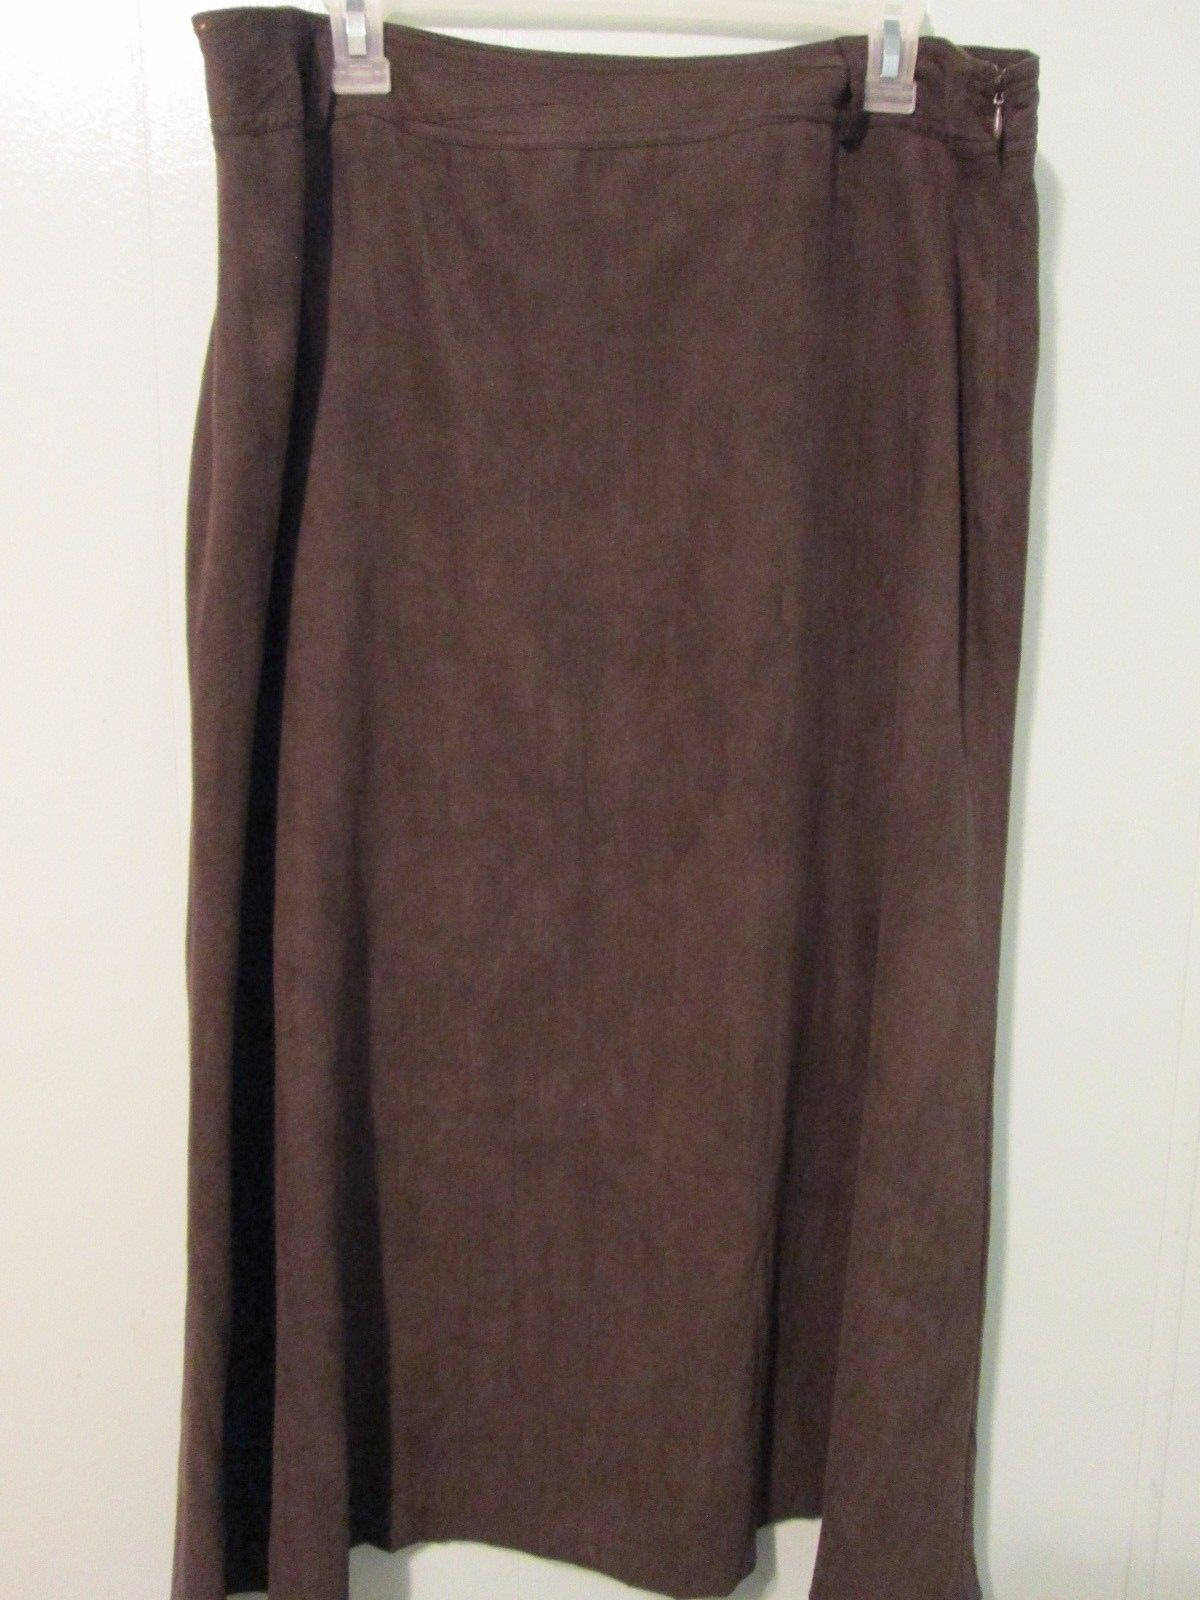 Women's brown full length skirt Size 16 by JM Collection  MKS056